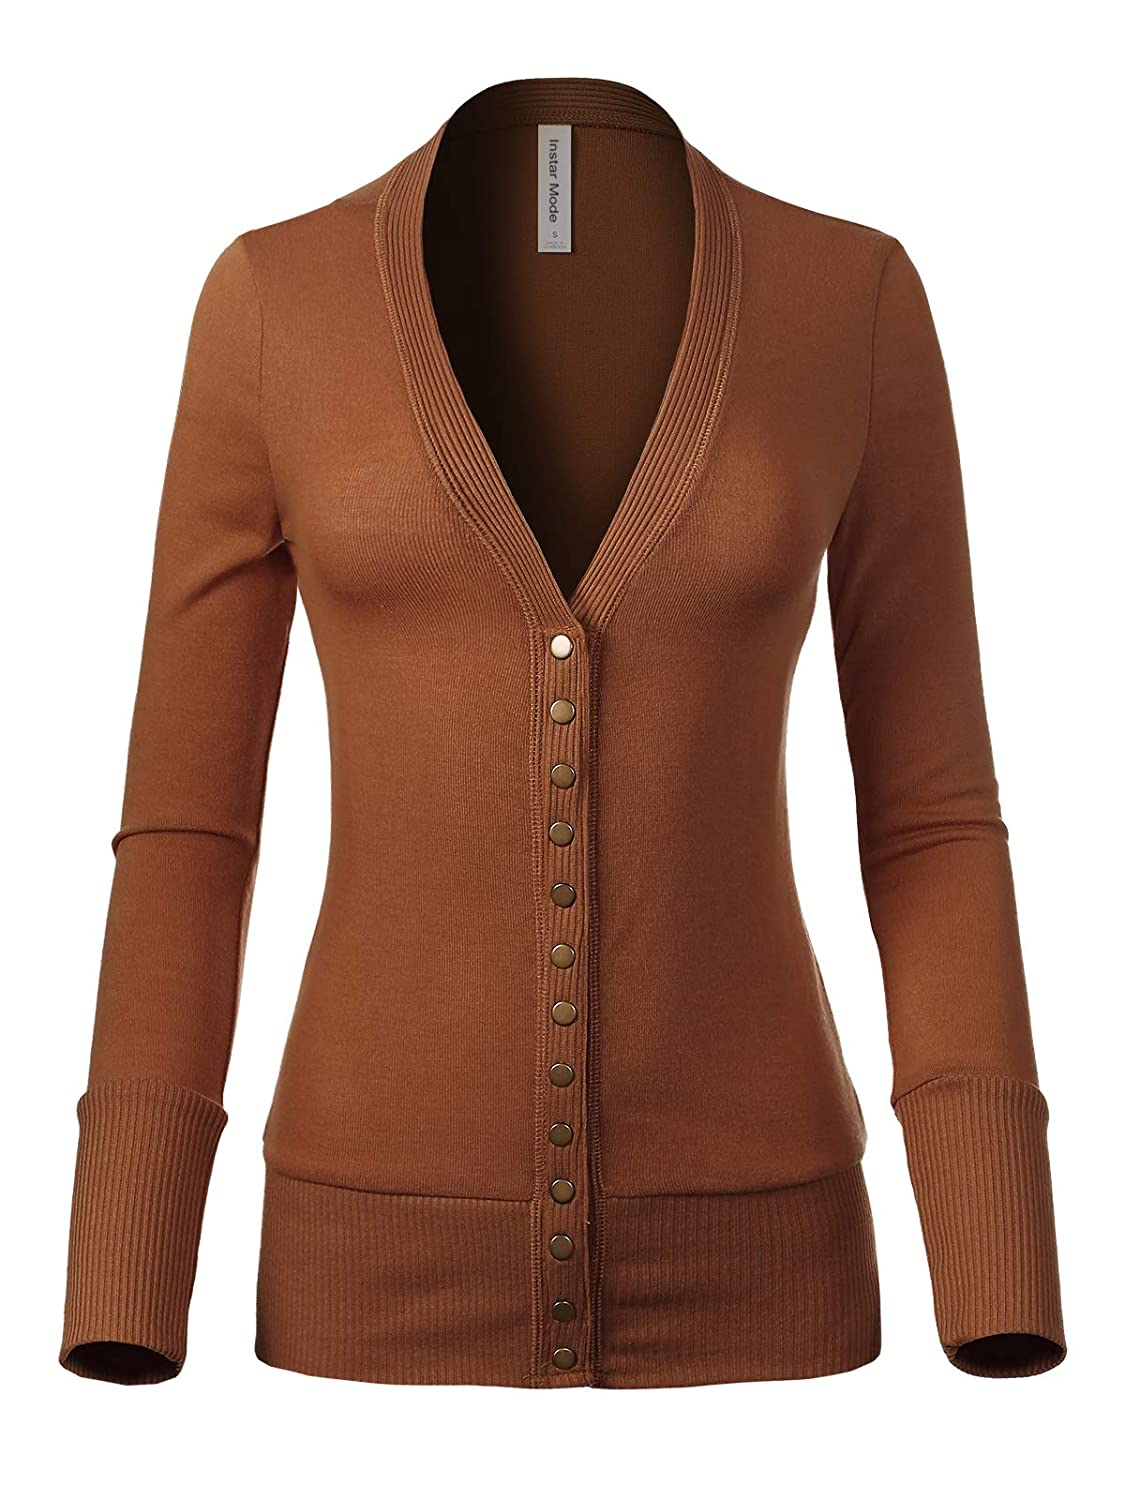 Icaw010 Camel Instar Mode Women's Soft Basic VNeck Snap Button Down Knit Cardigan